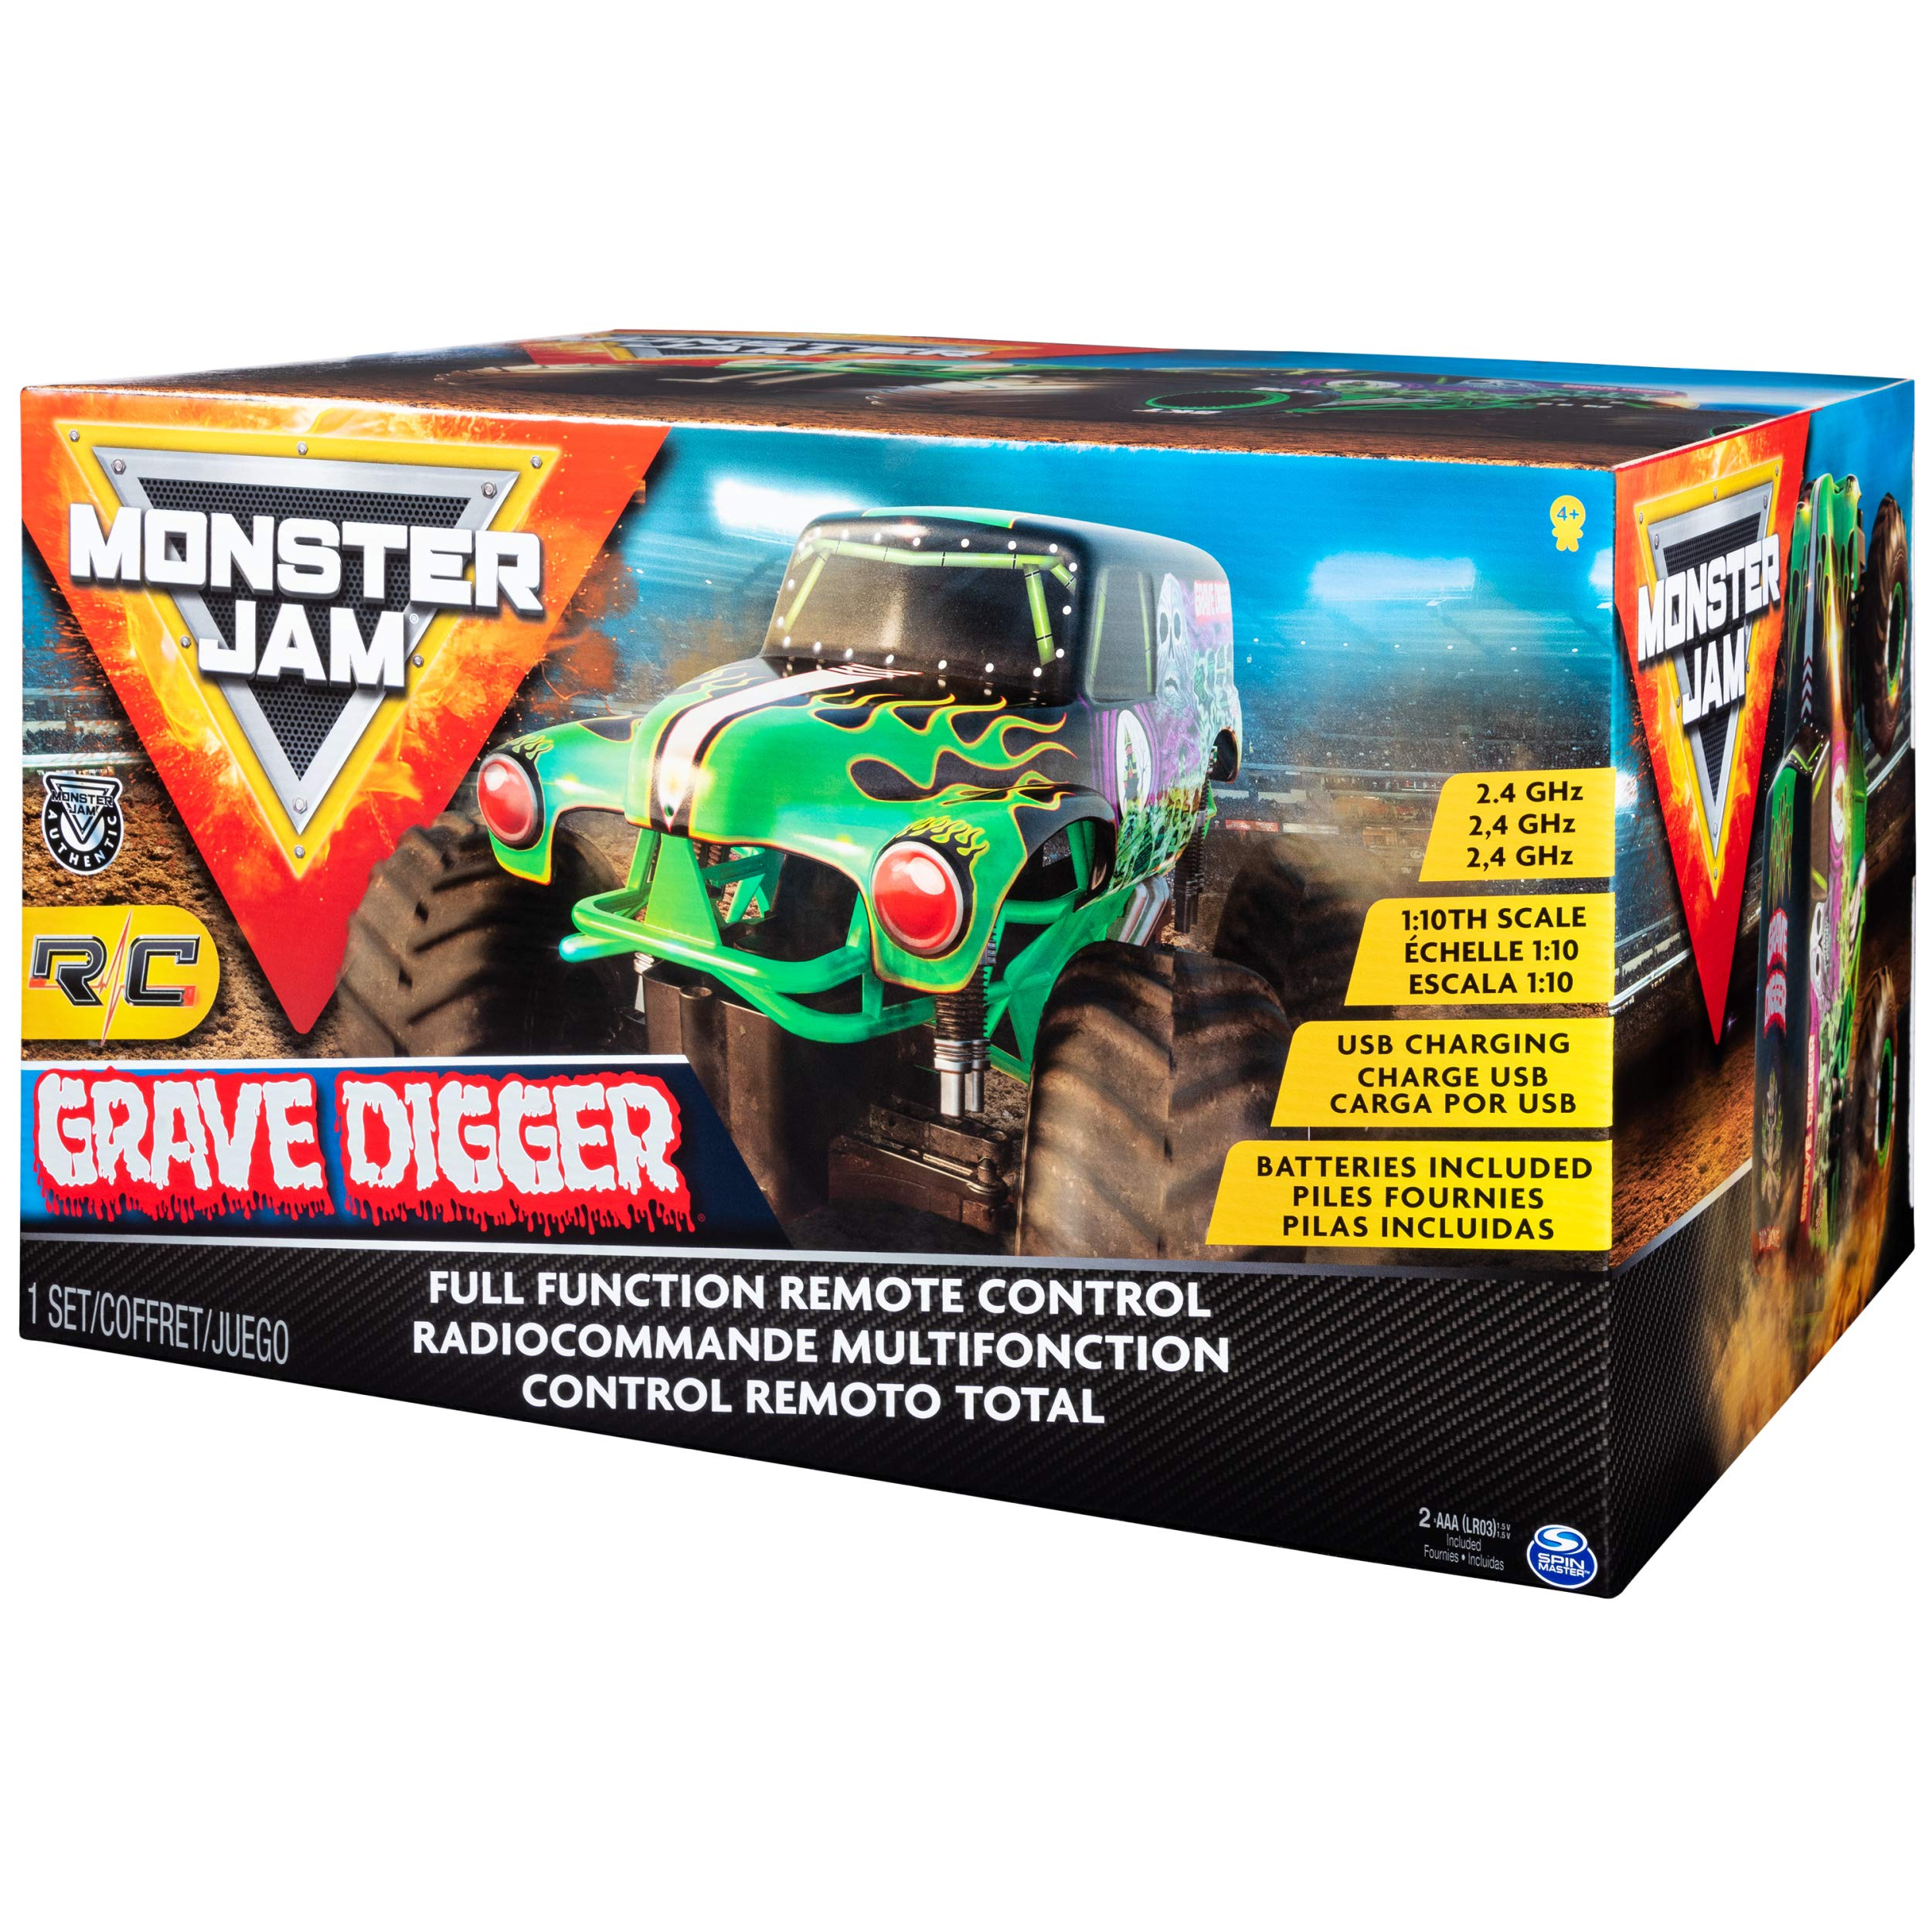 Monster Jam Official Grave Digger Rc Truck 1: 10 Scale with Lights & Sounds For Ages 4 & Up by Monster Jam (Image #6)